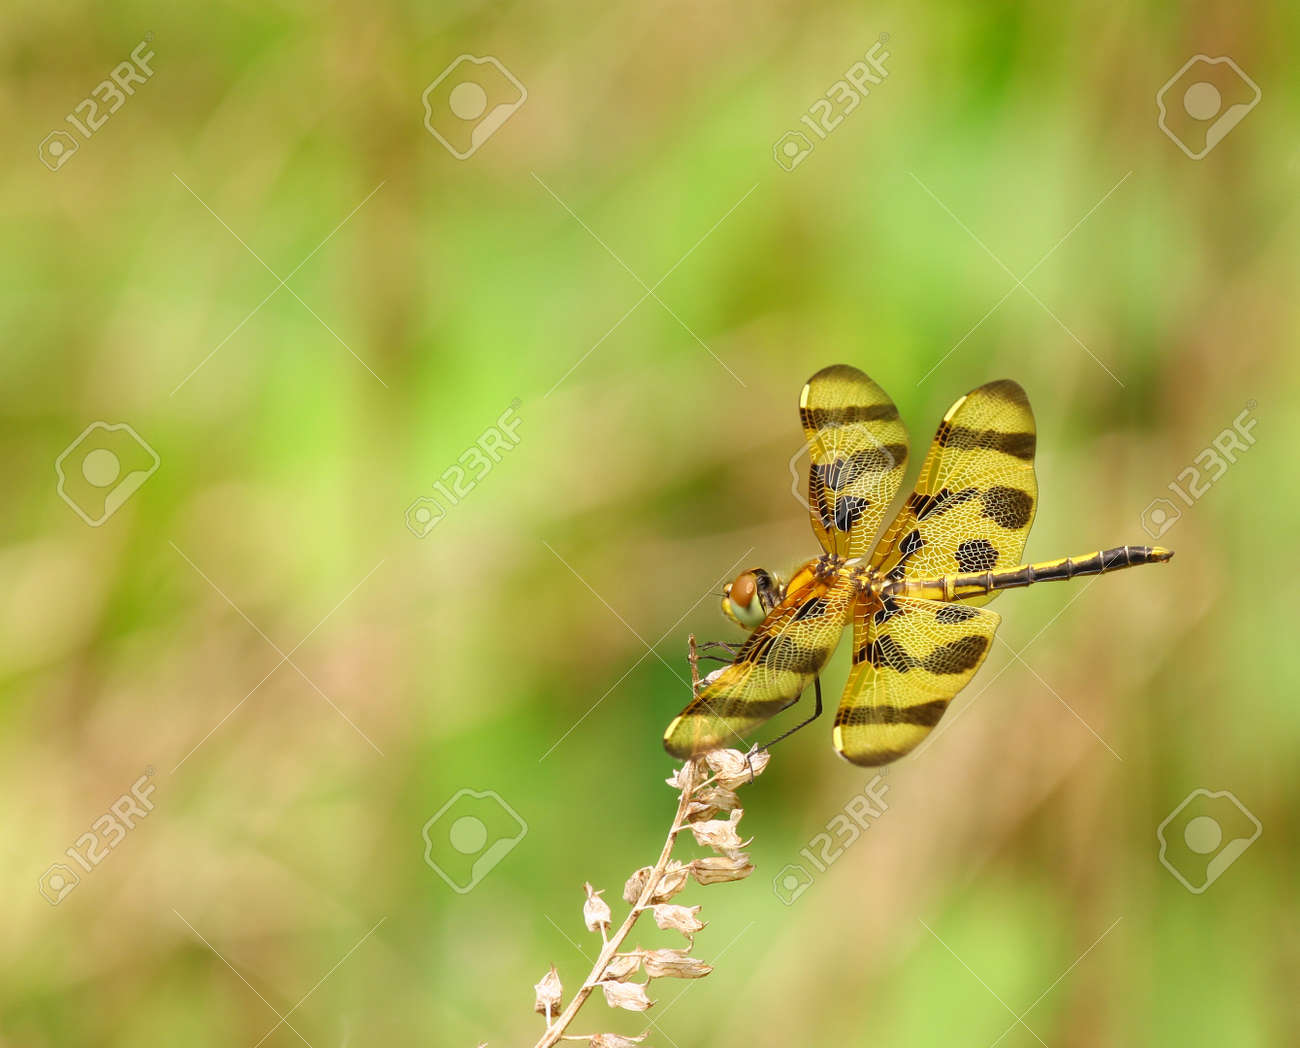 A Beautiful Golden Dragonfly known as Stock Photo - 14952813